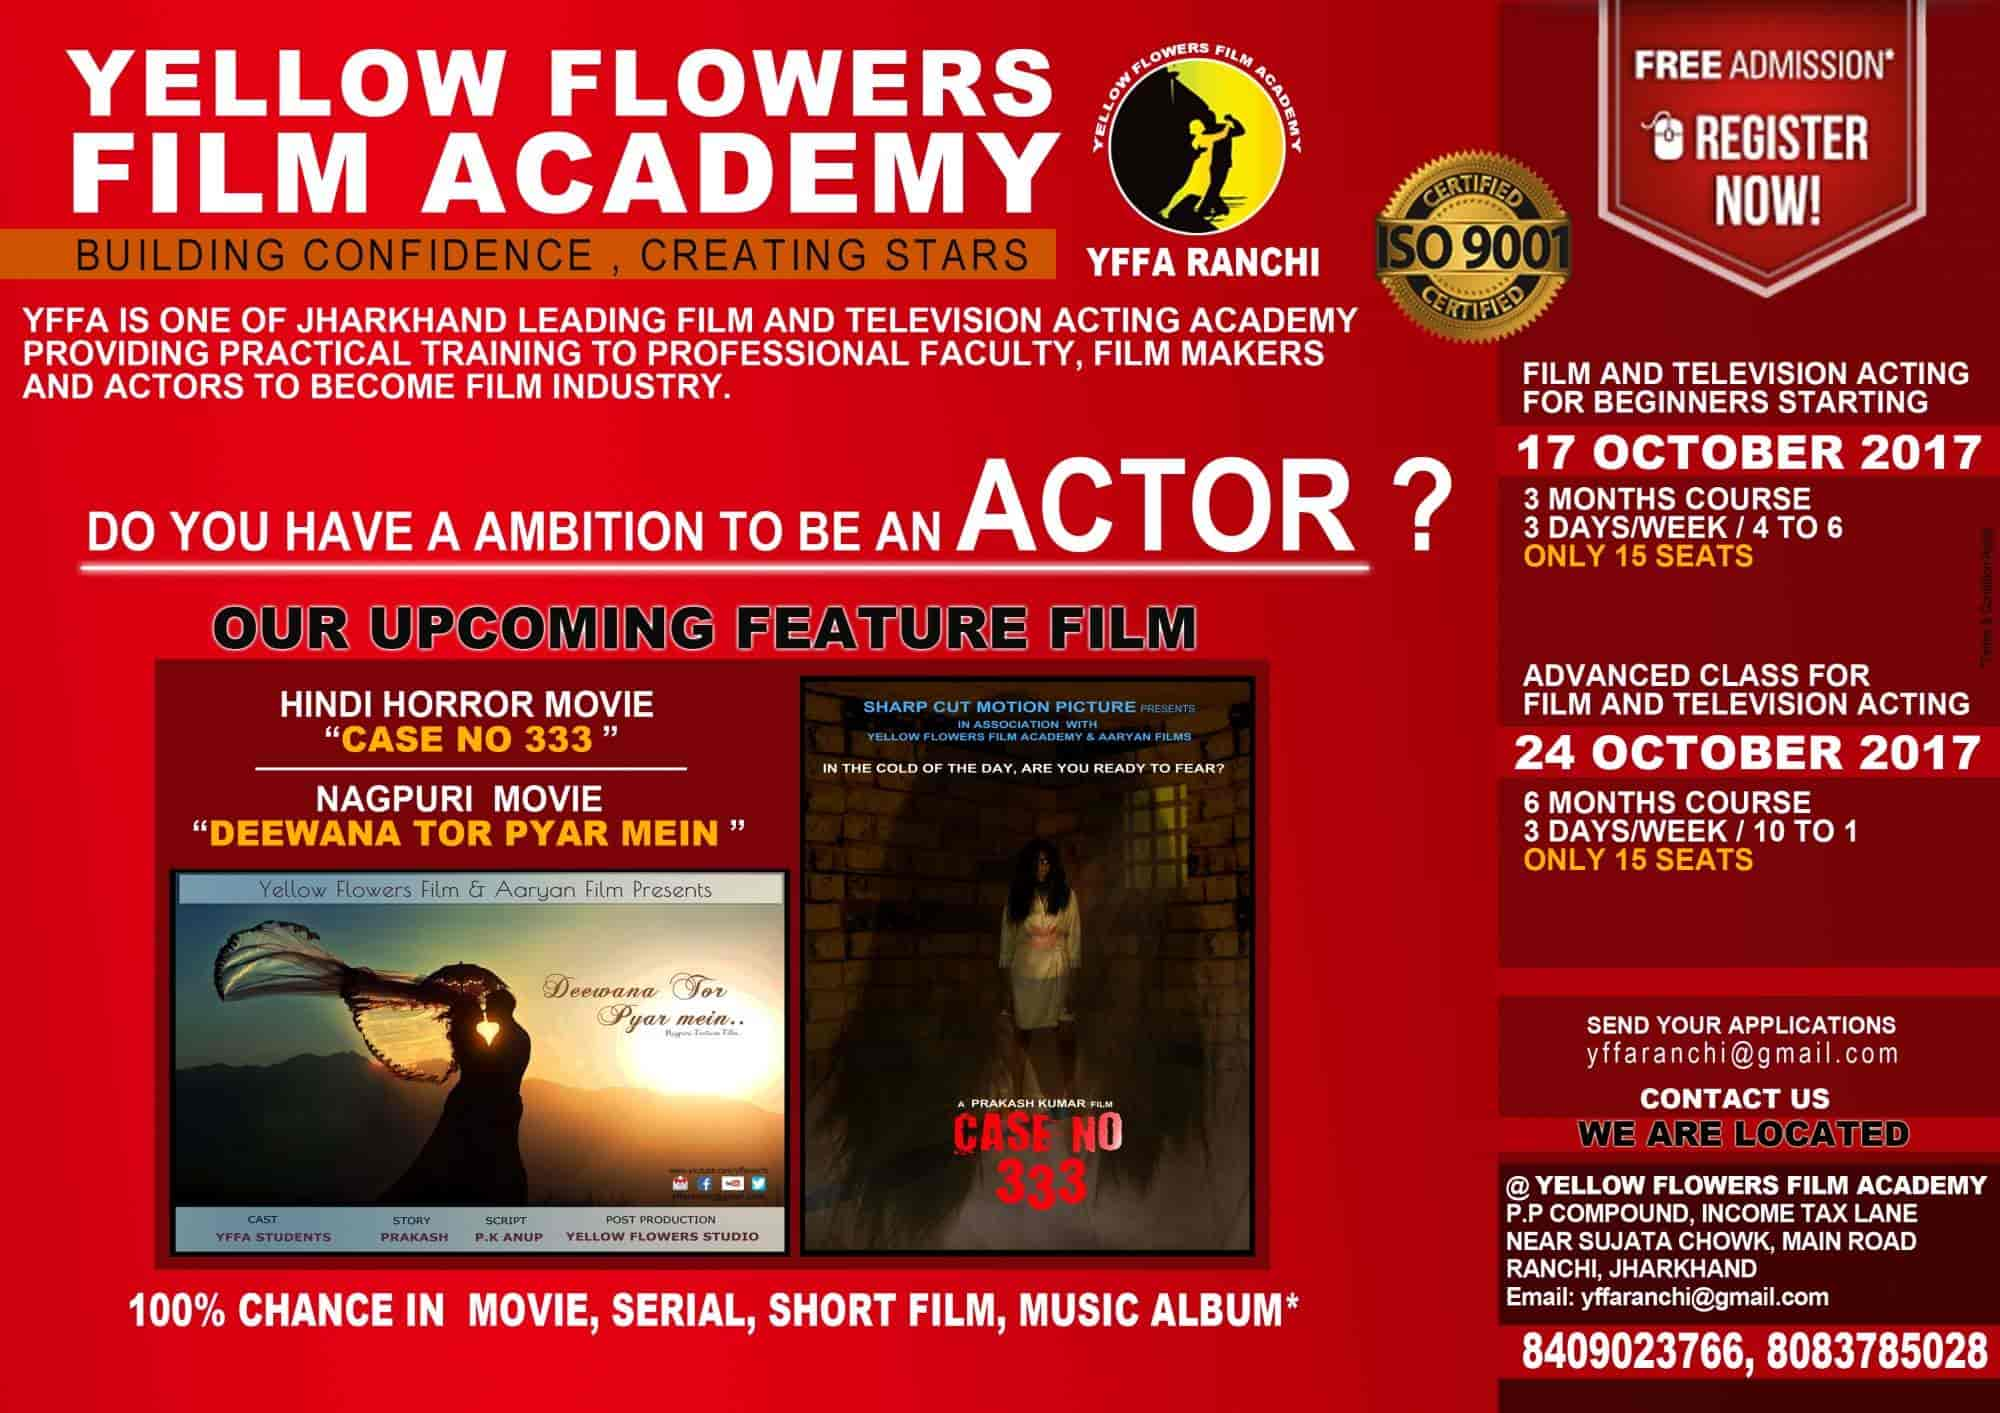 Yellow flower film academy photos argora ranchi pictures images yellow flower film academy photos argora ranchi acting classes mightylinksfo